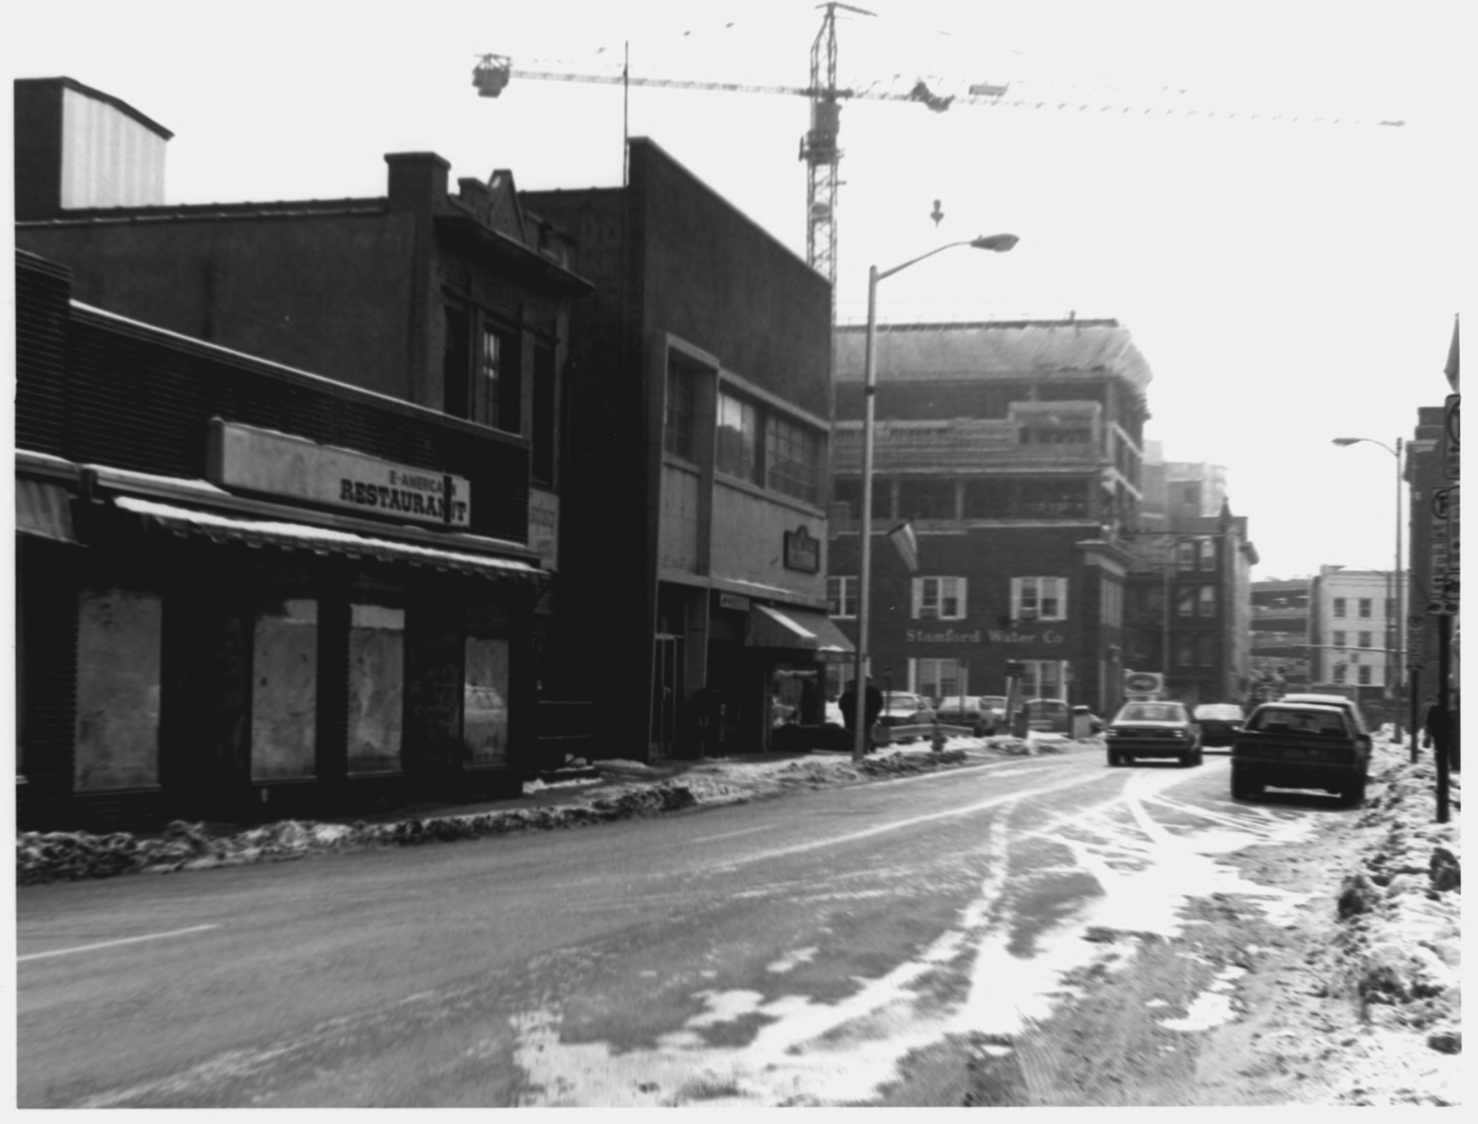 Northeast View of Summer Streat by J. Gardner in Jan. 1984